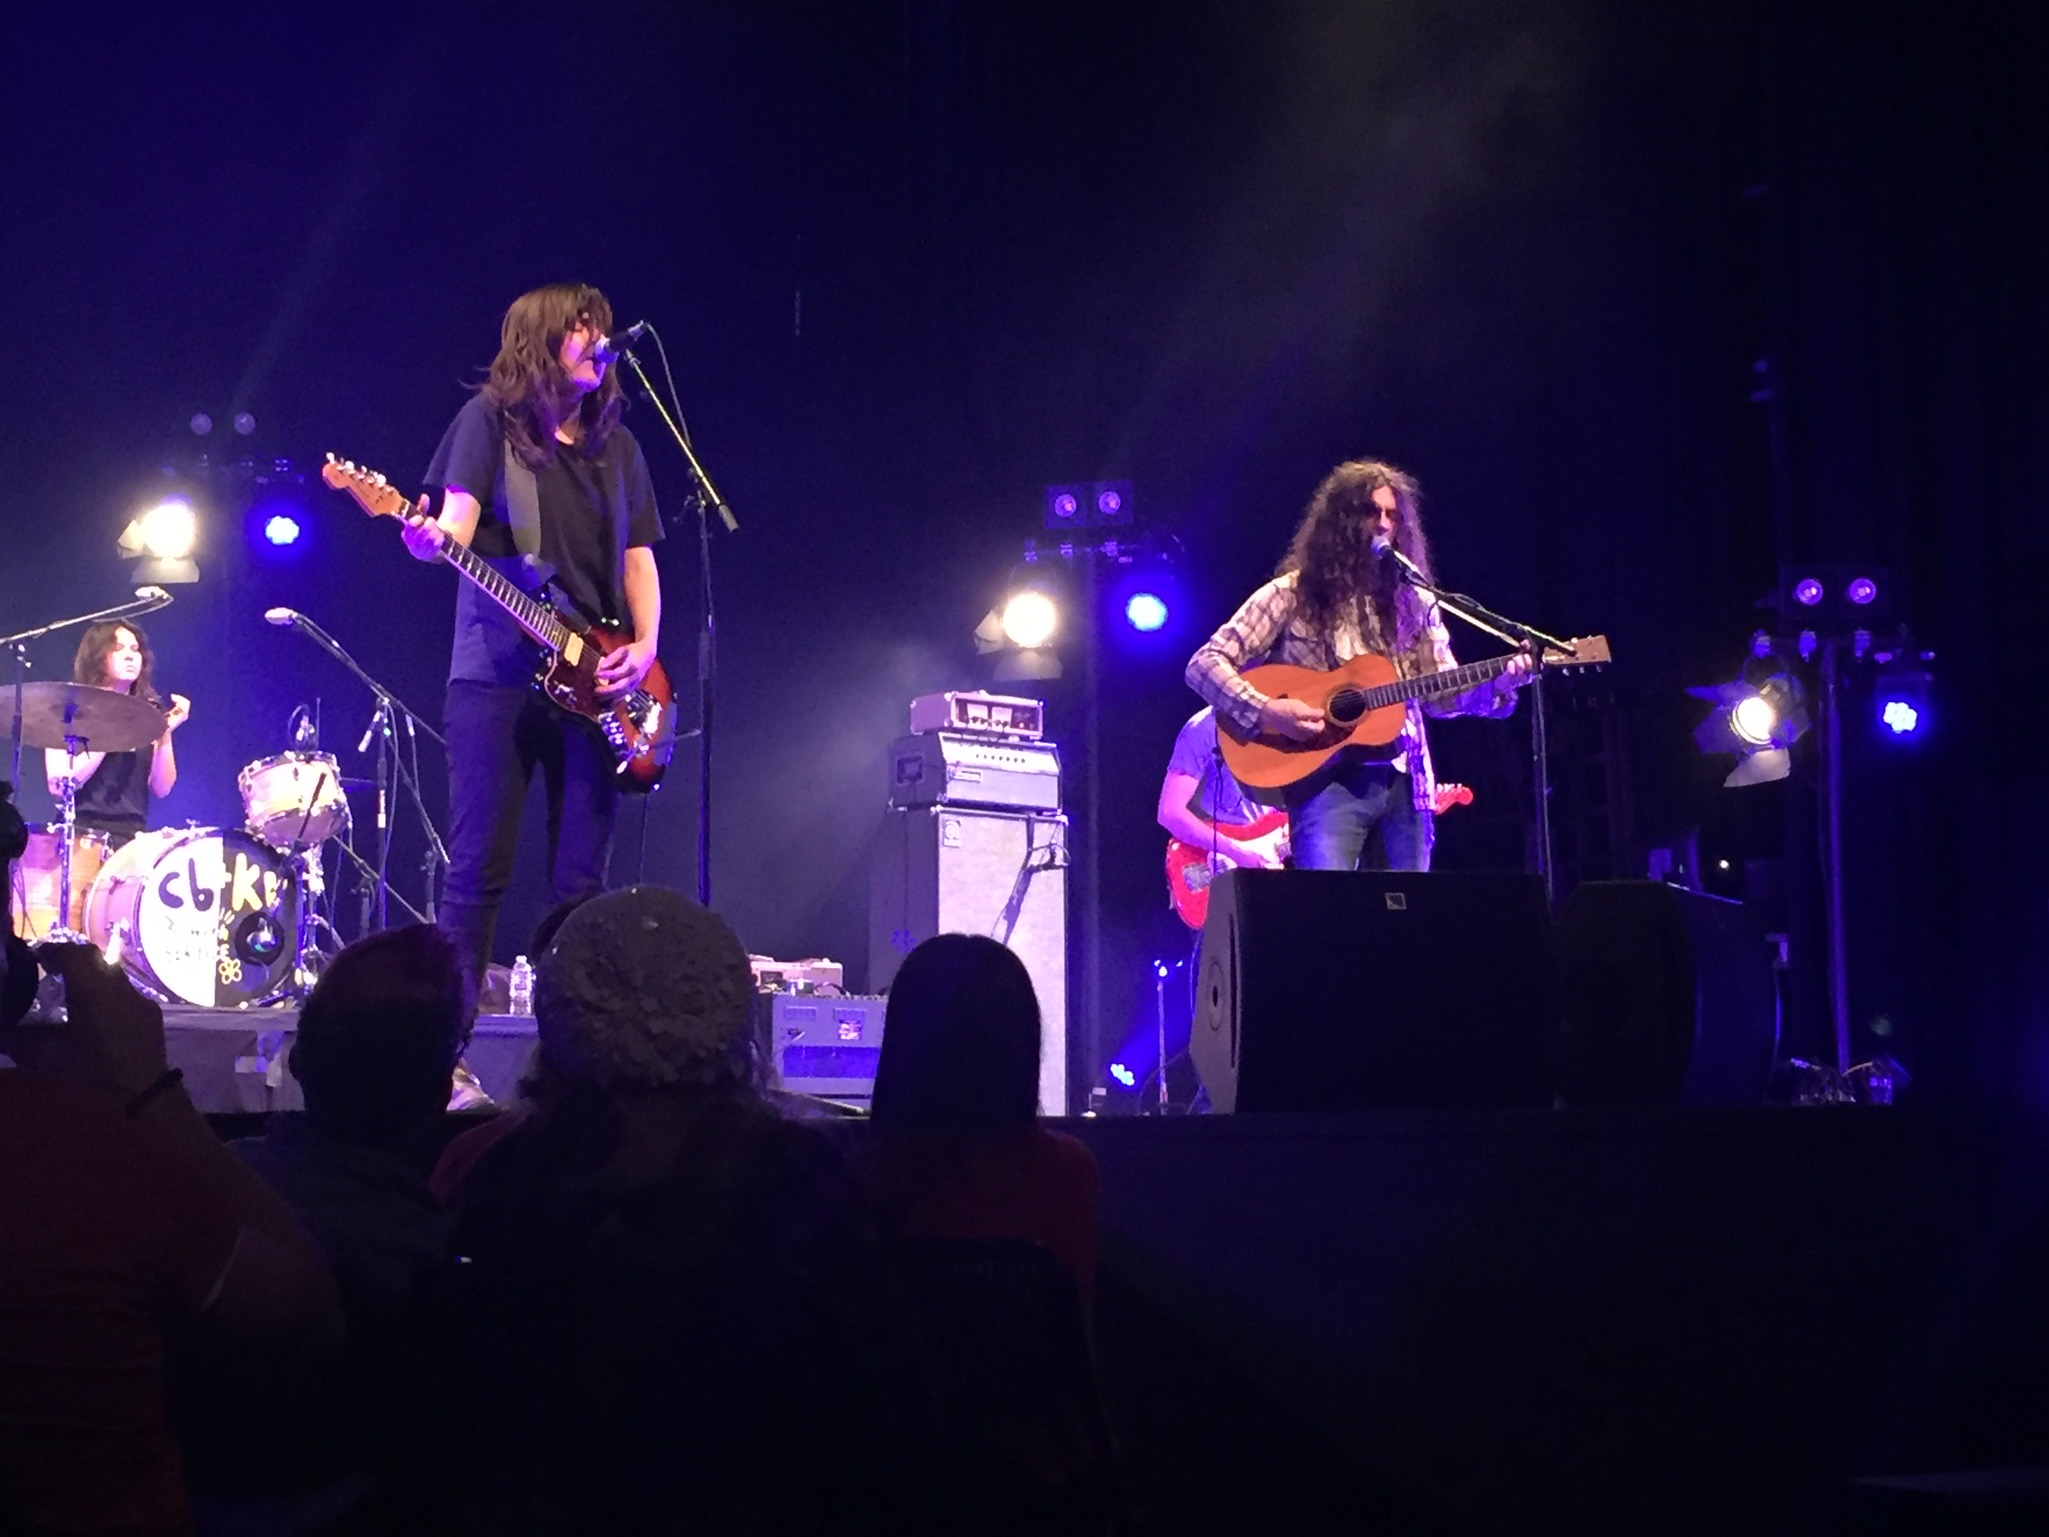 Courtney Barnett and Kurt Vile w/ The Sea Lice at SMU McFarlin Auditorium (my photo)